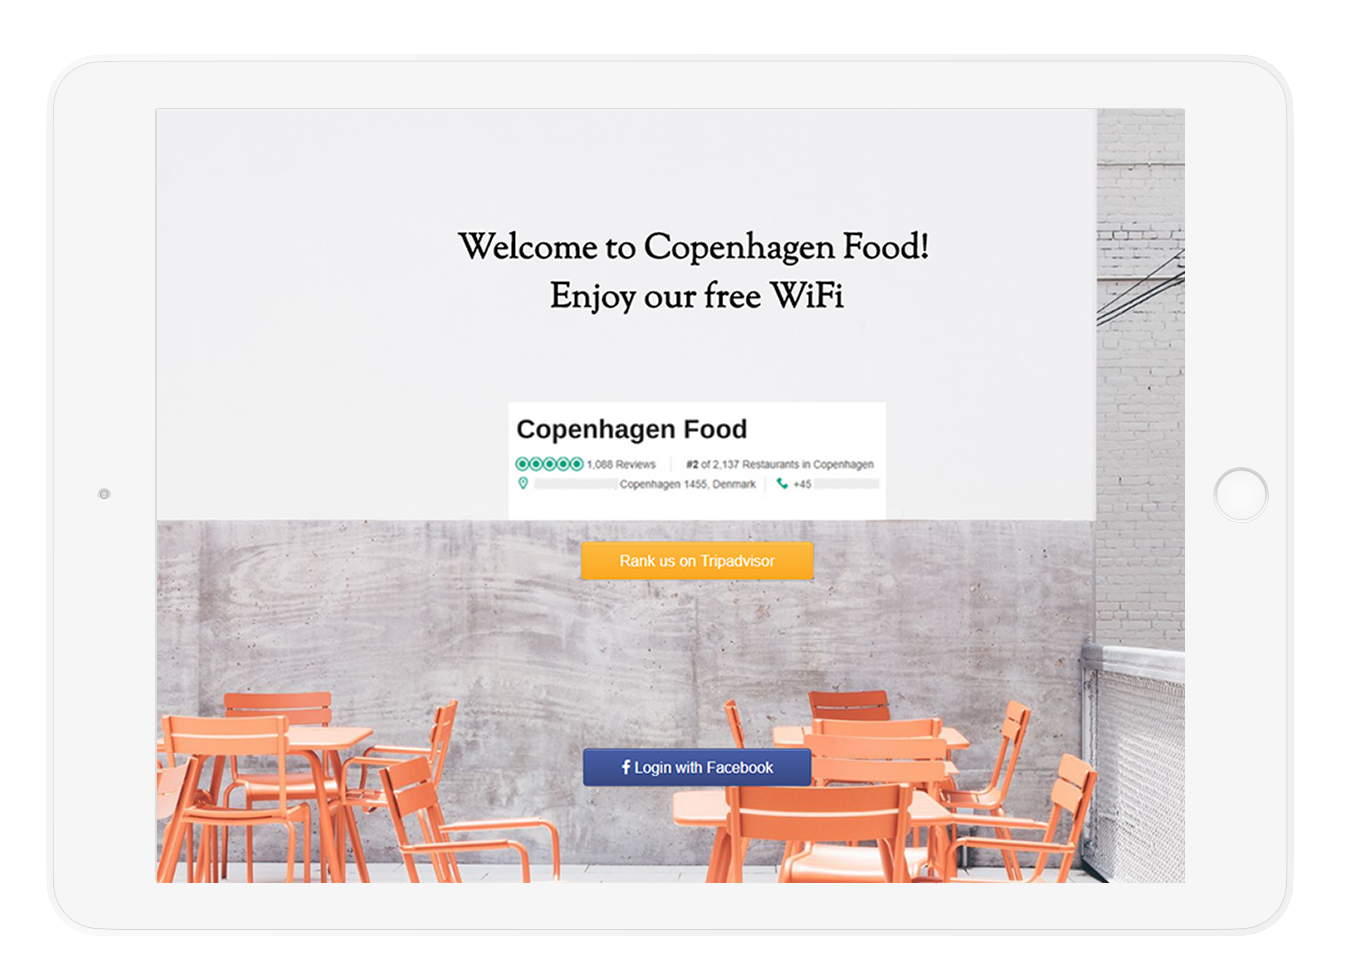 Copenhagen FoodTripadvisor Reviews Splash Page Final Example